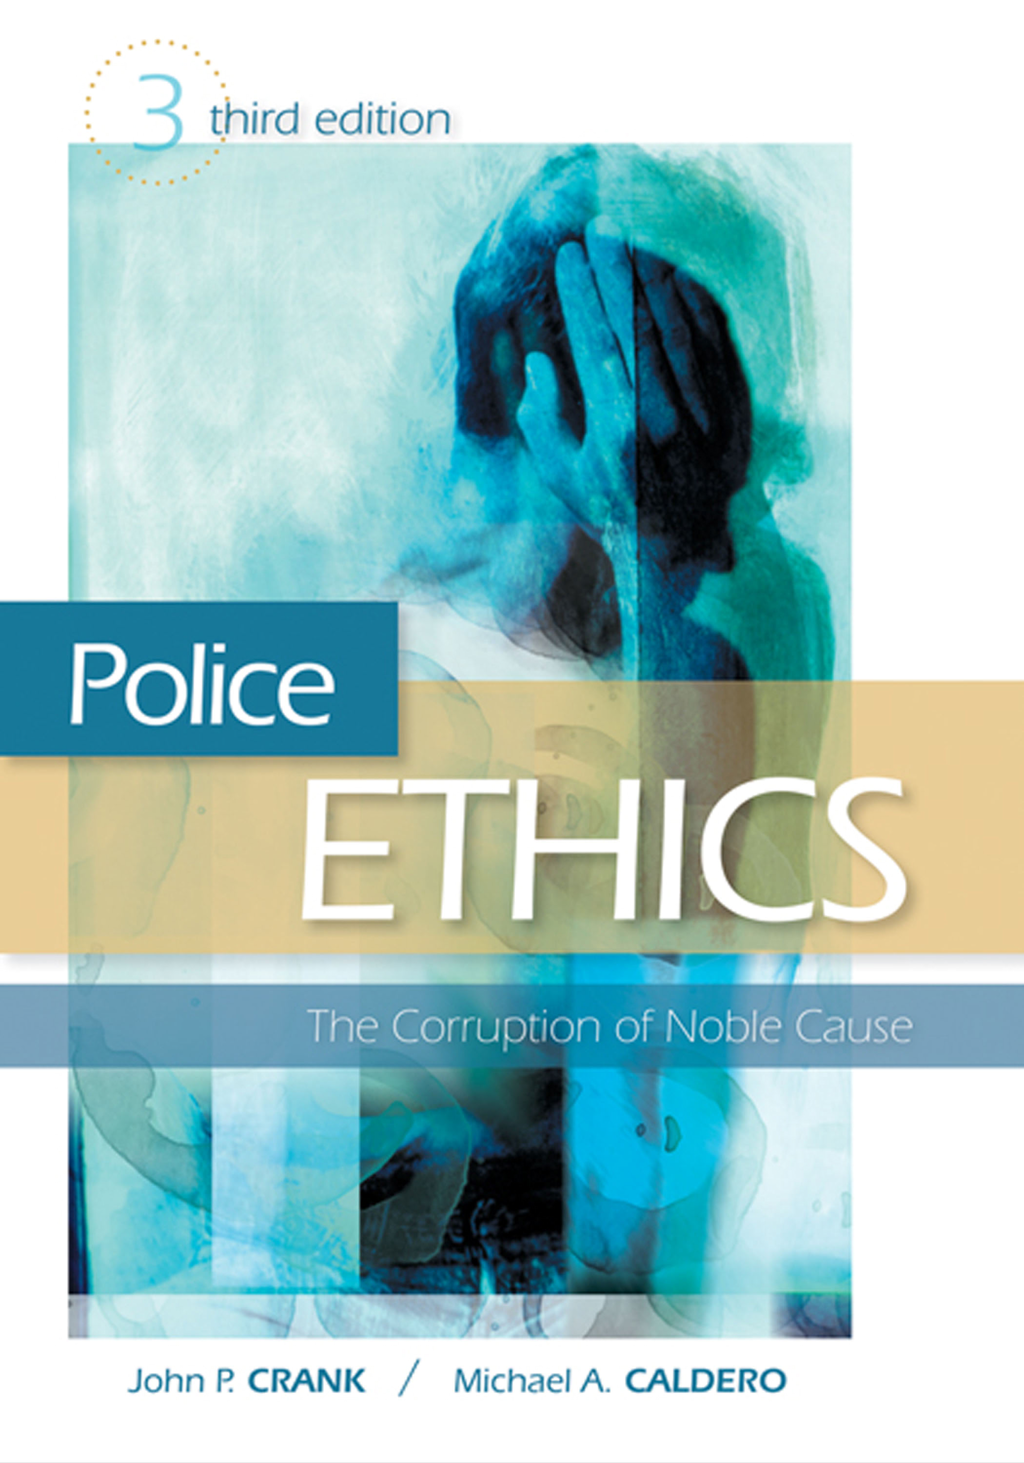 Police Ethics (Revised Printing) By: John P. Crank,Michael A. Caldero